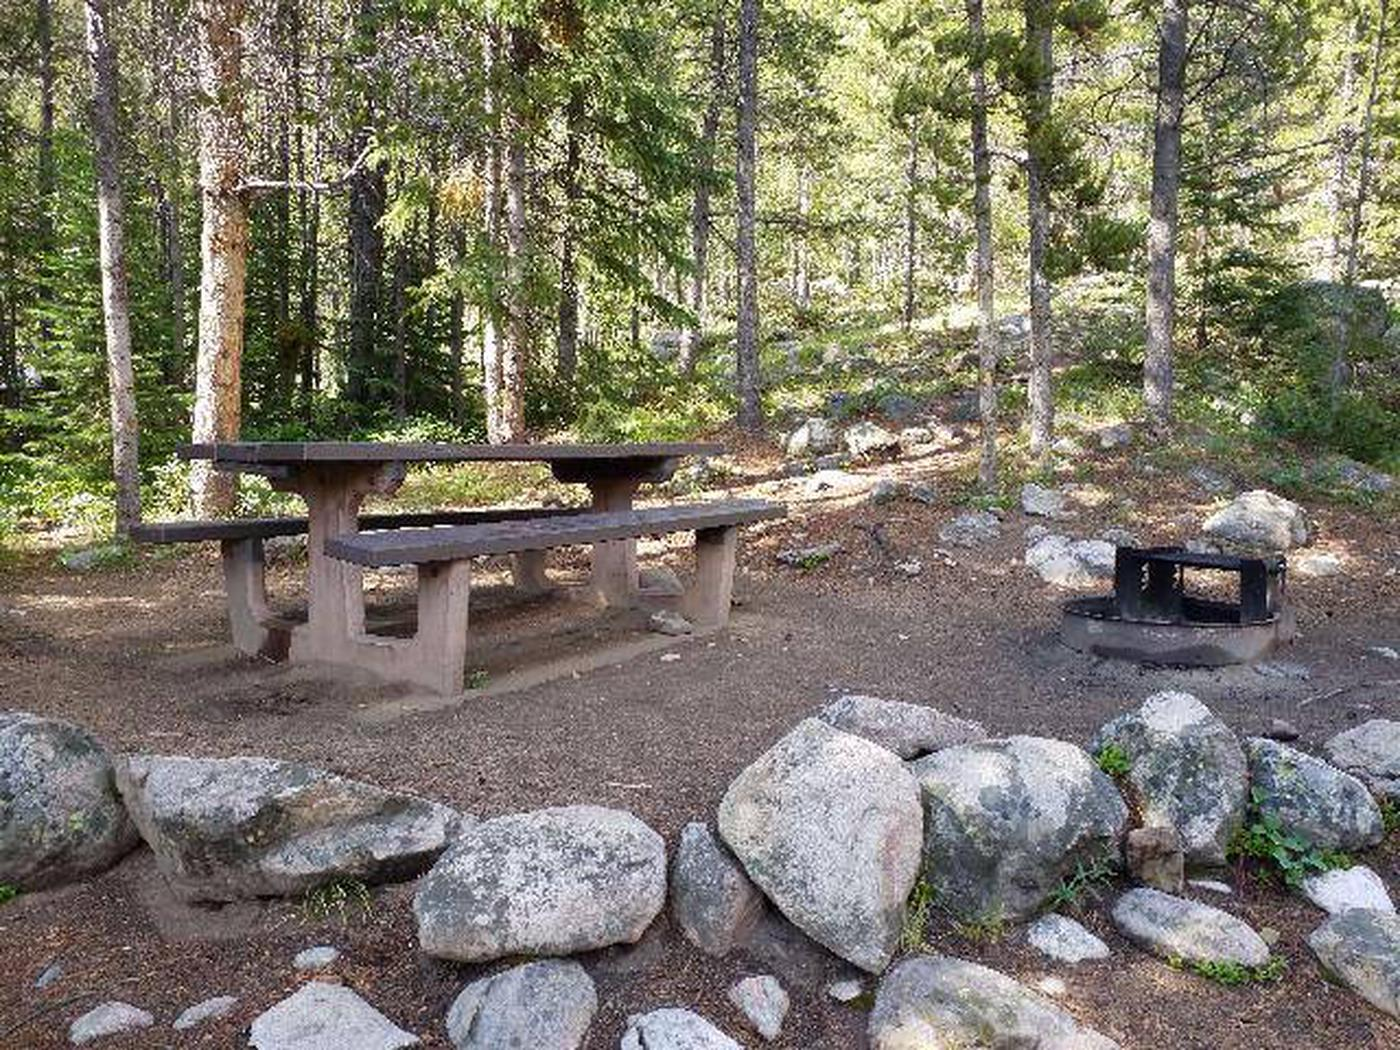 May Queen Campground, site 3